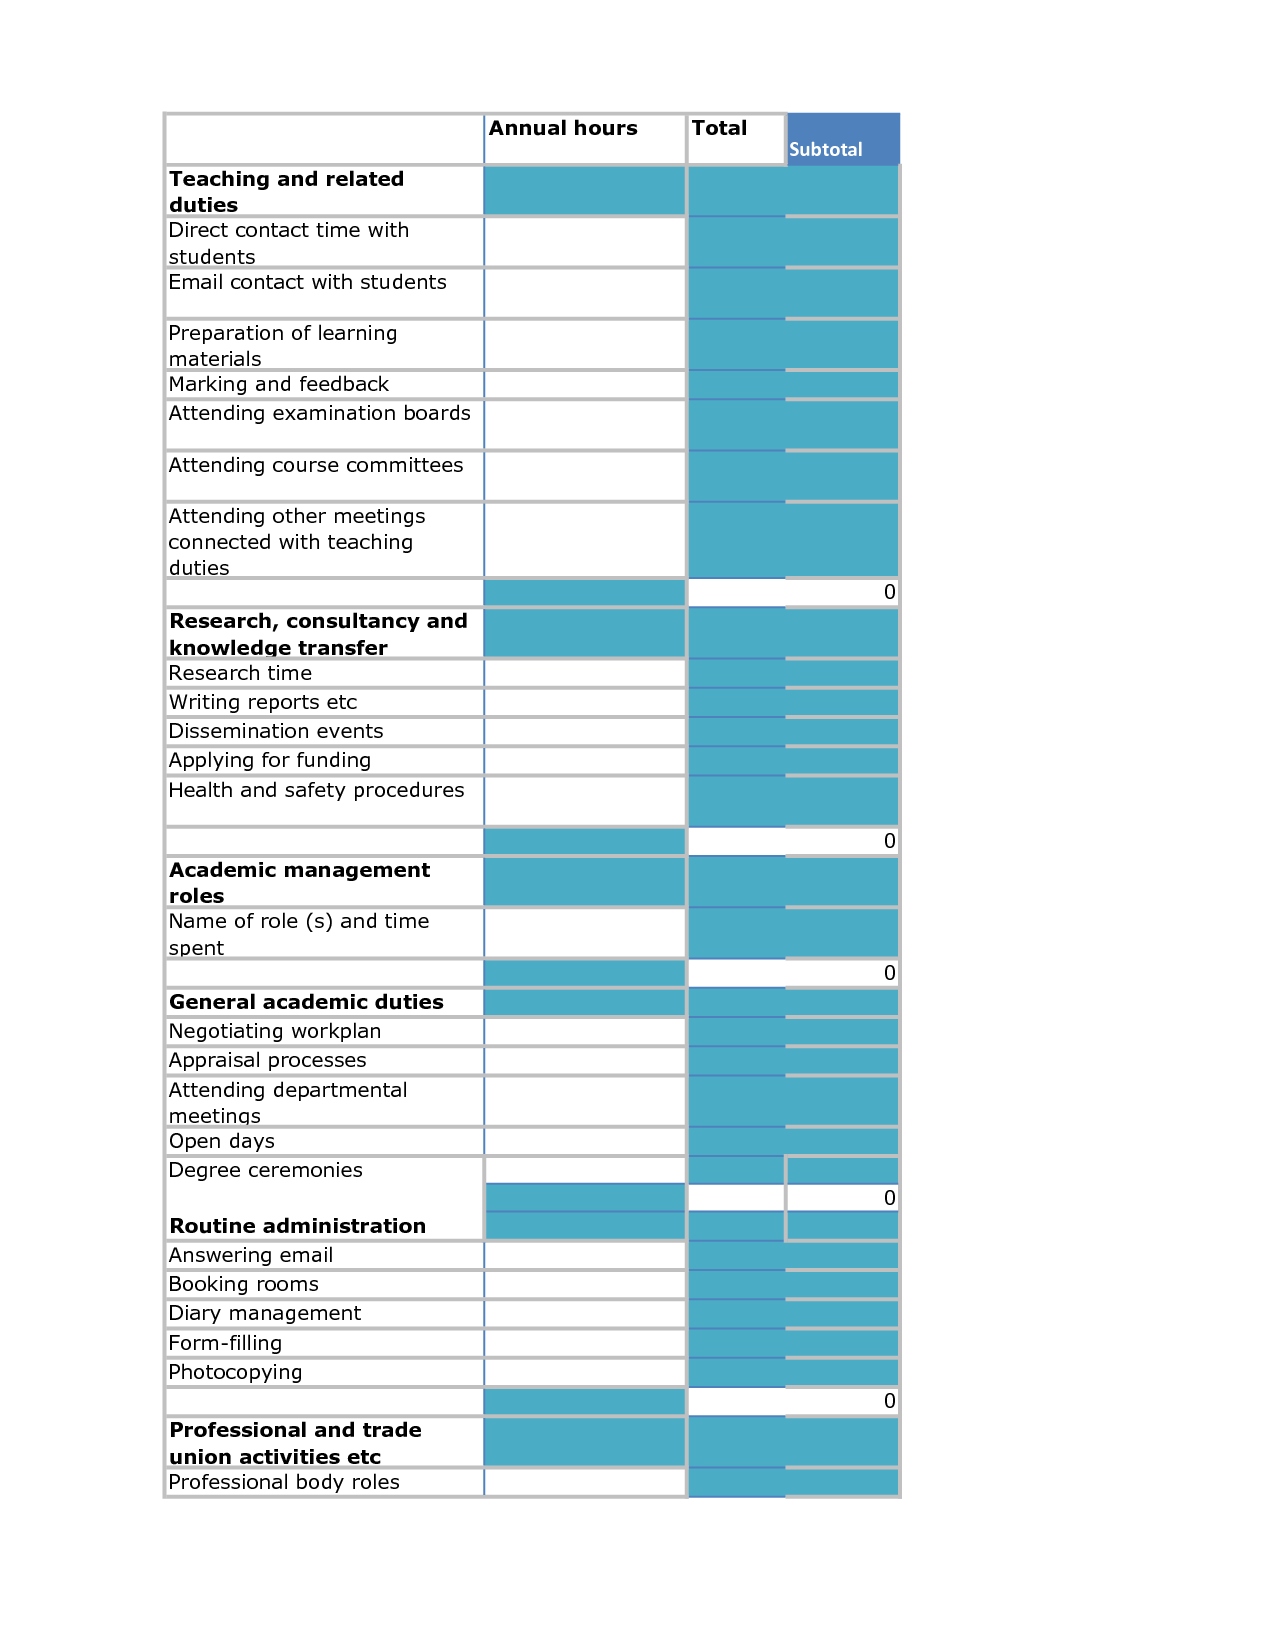 Workload Assessment Template Workload Template Self Help